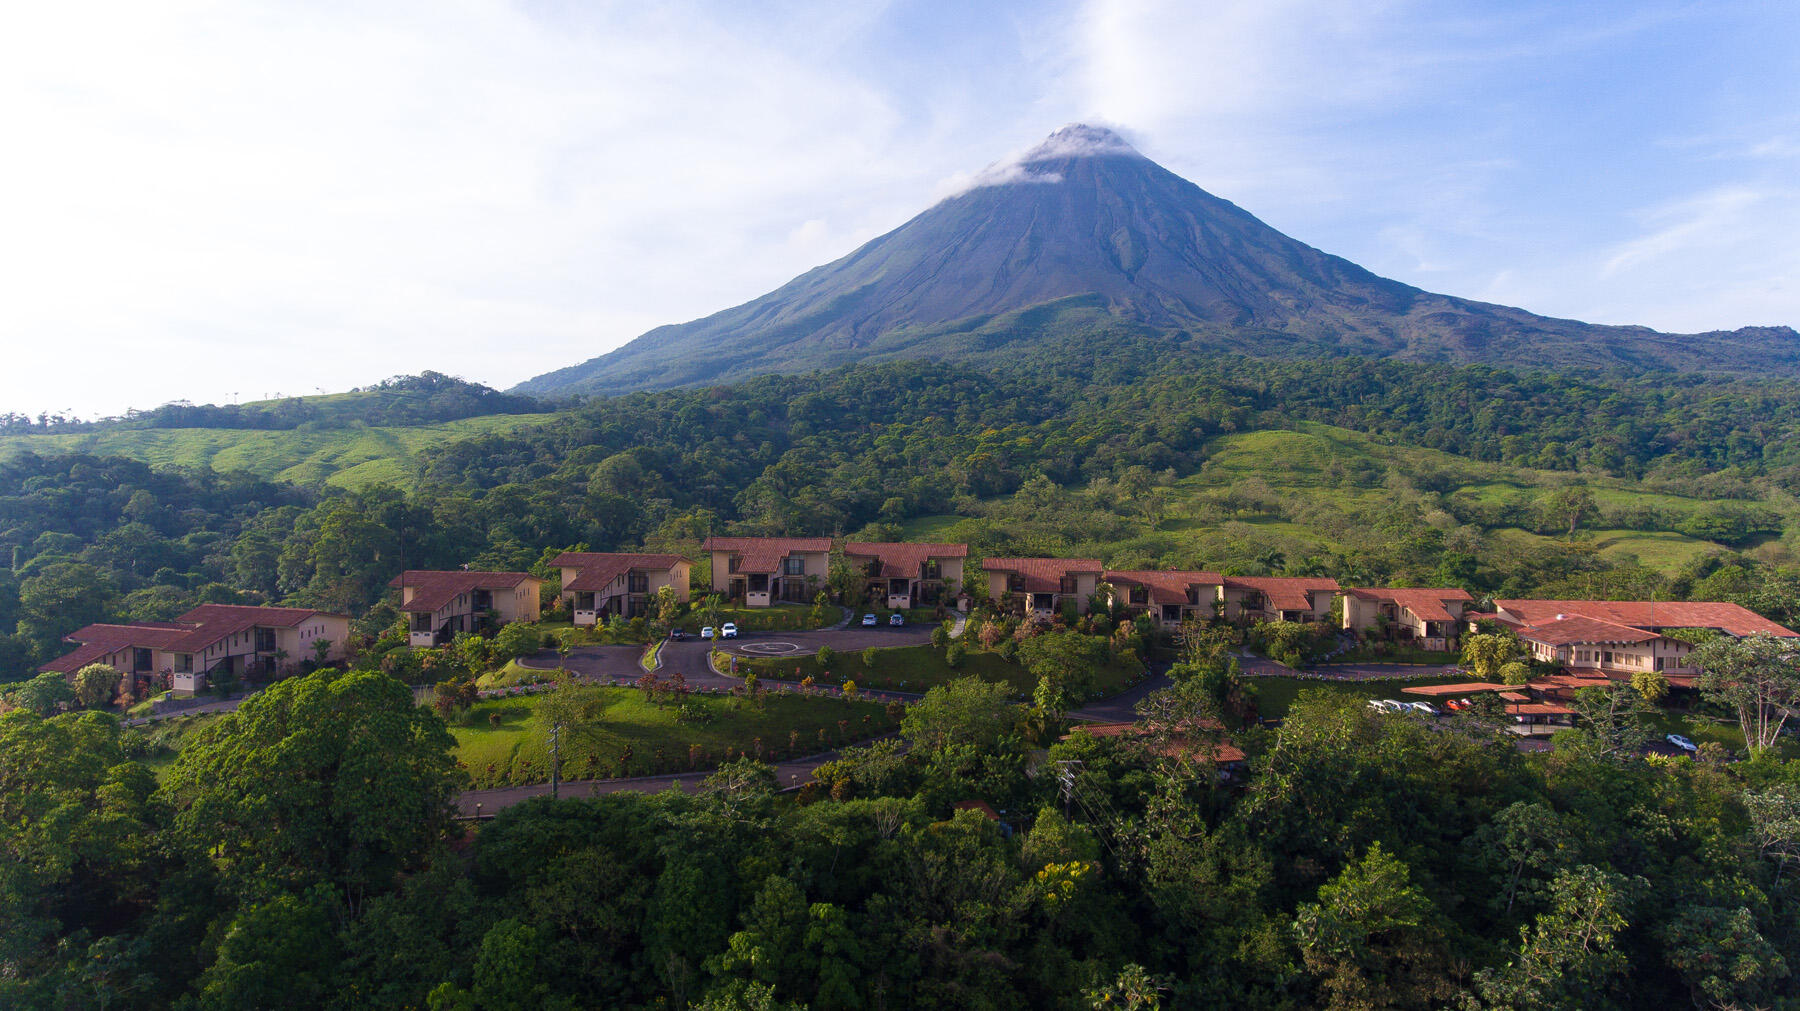 Volcano in Background of Hotel